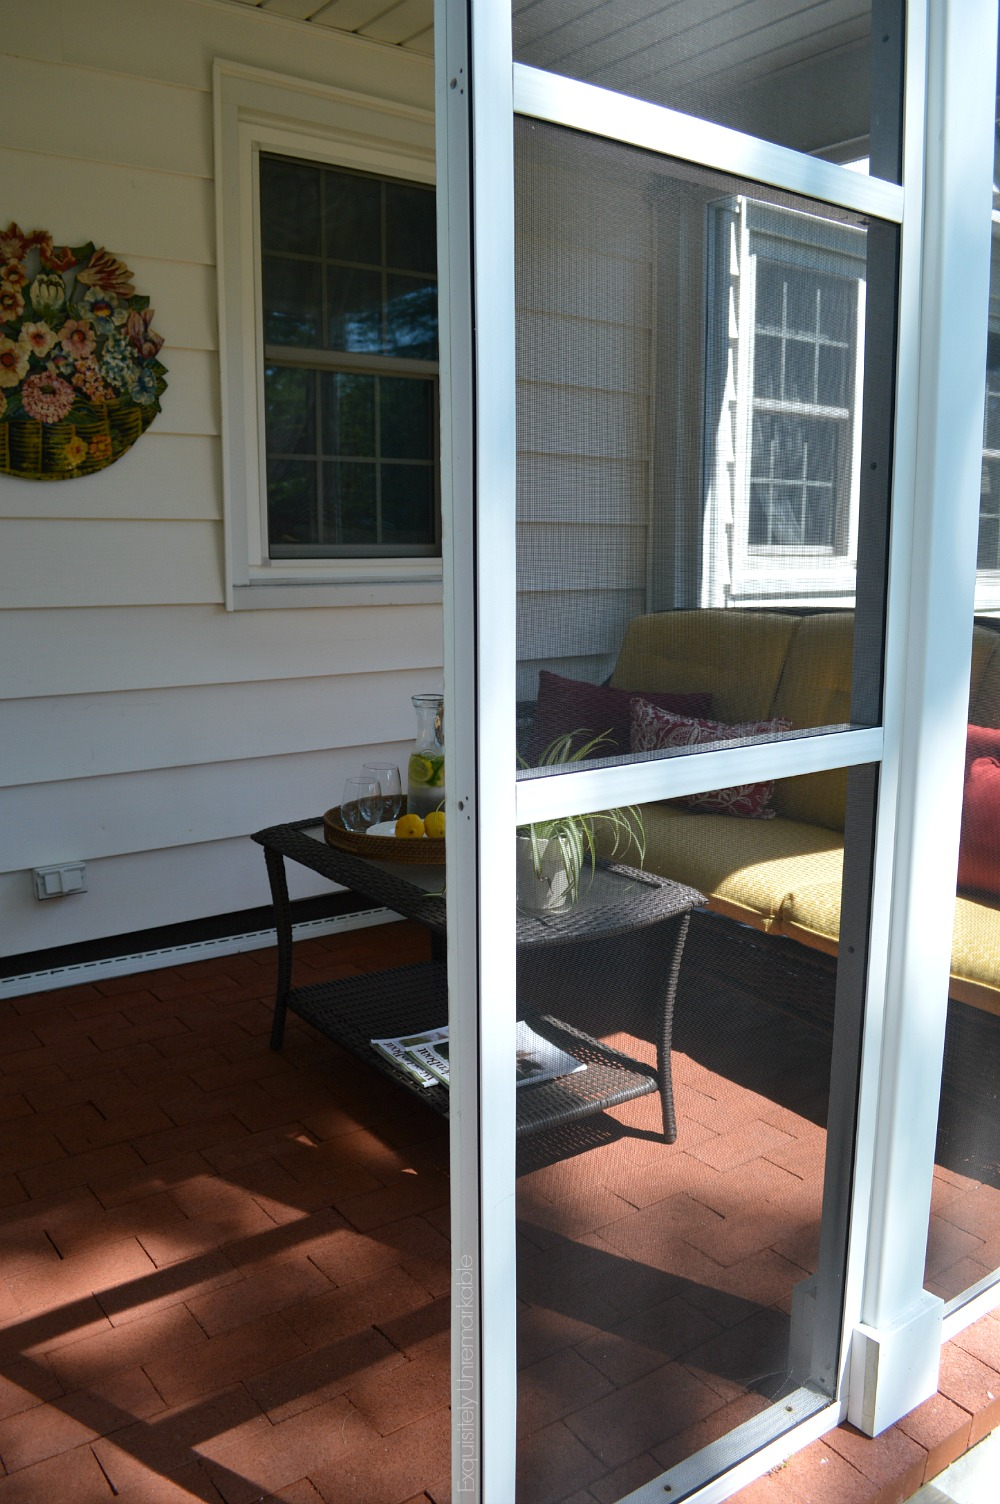 How to screen in a porch with Home Depot Supplies